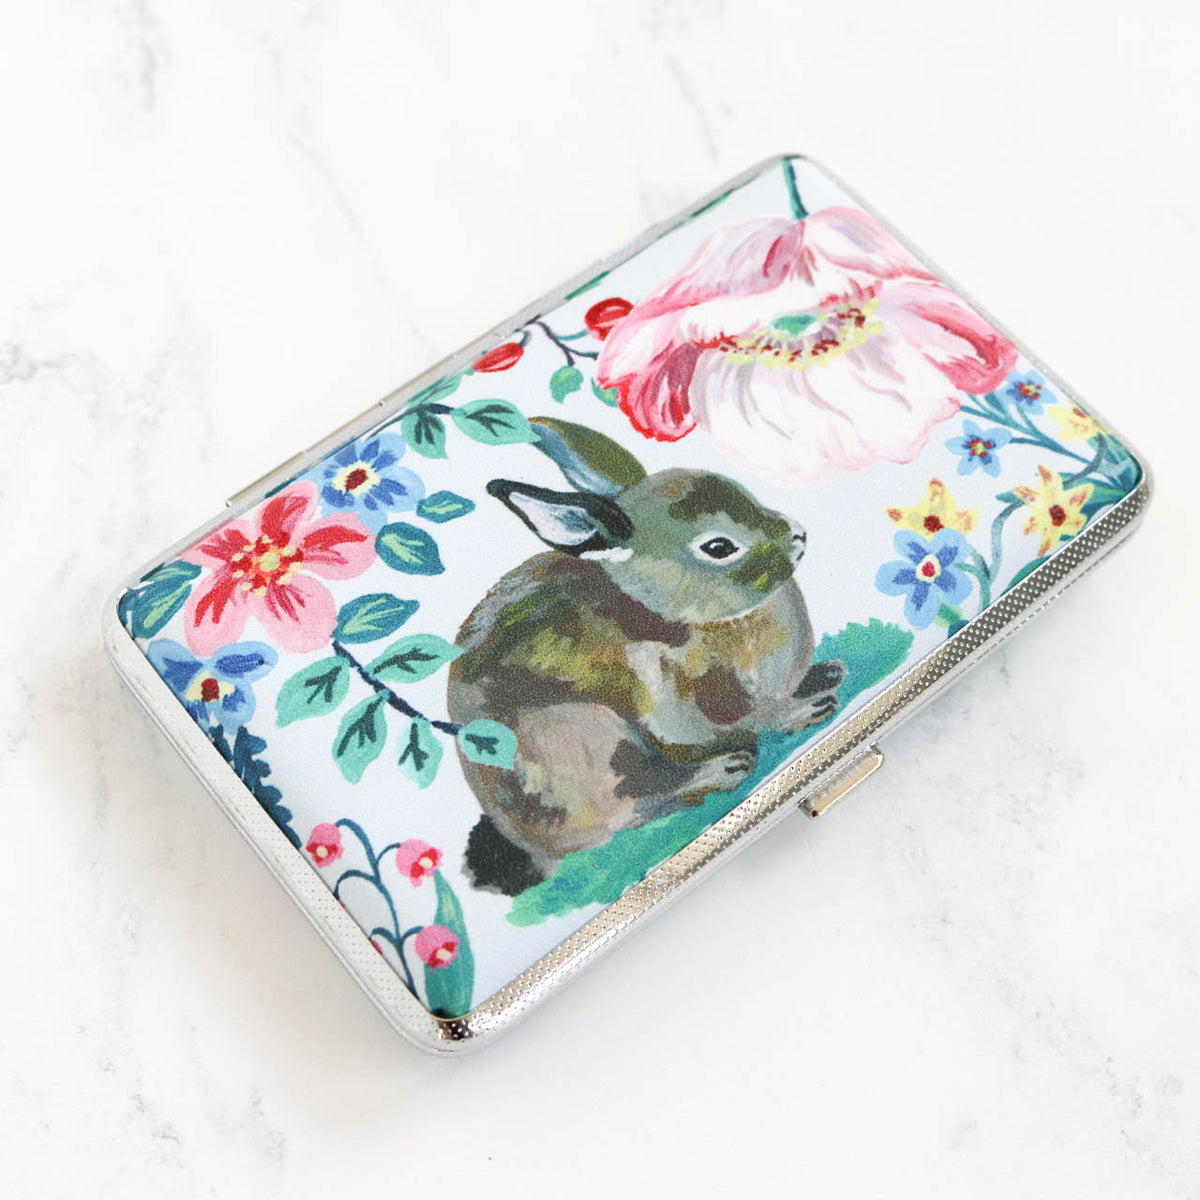 Embroidery Tool Case with (or without) Tools - Bunny by Nathalie Lété